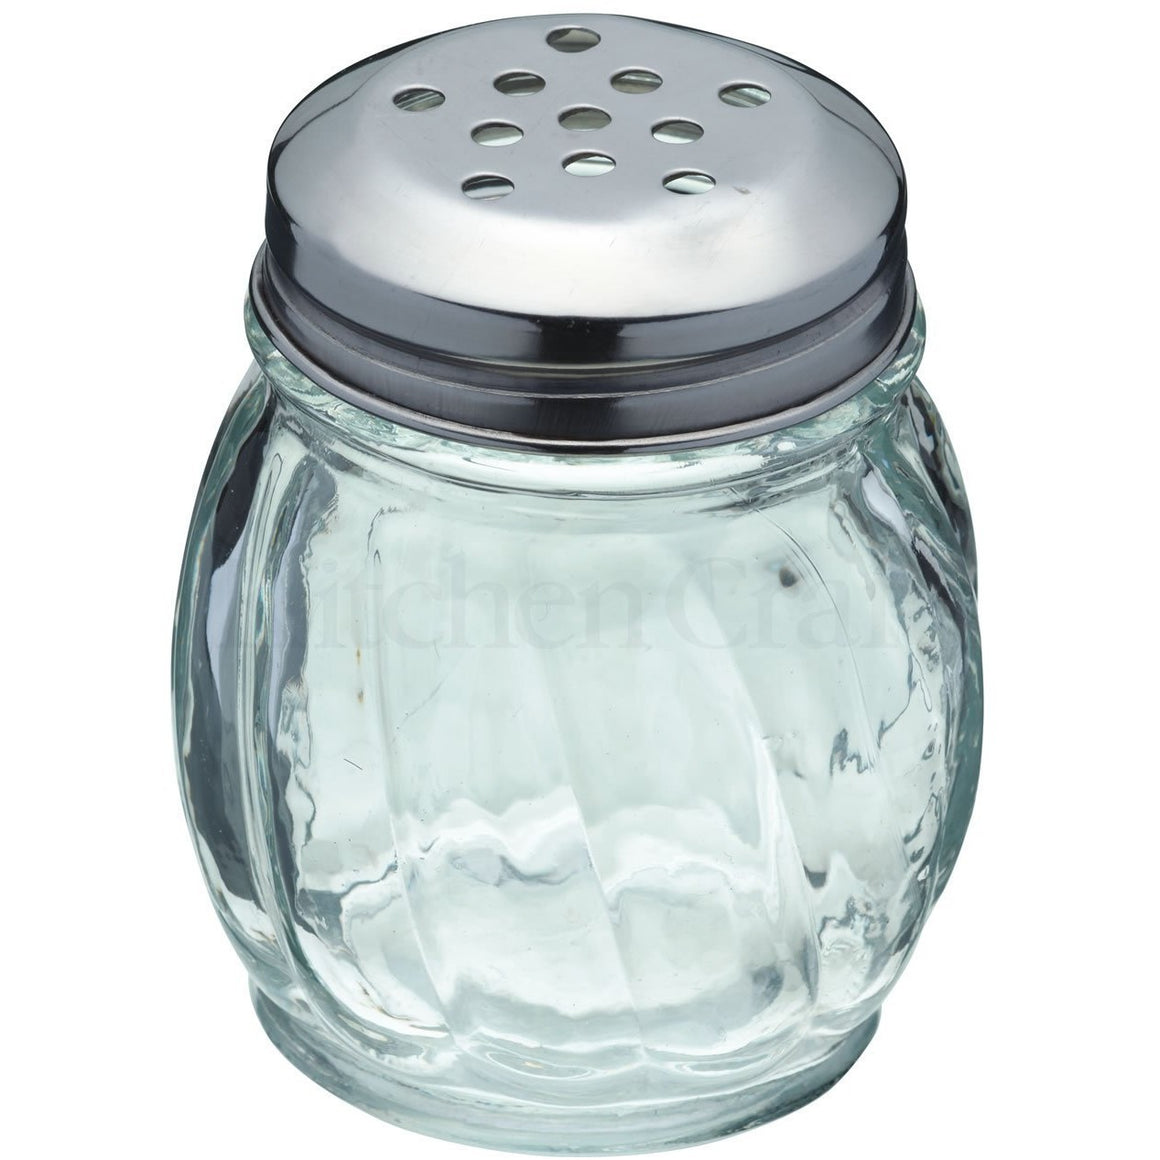 KitchenCraft Multi Purpose Shaker